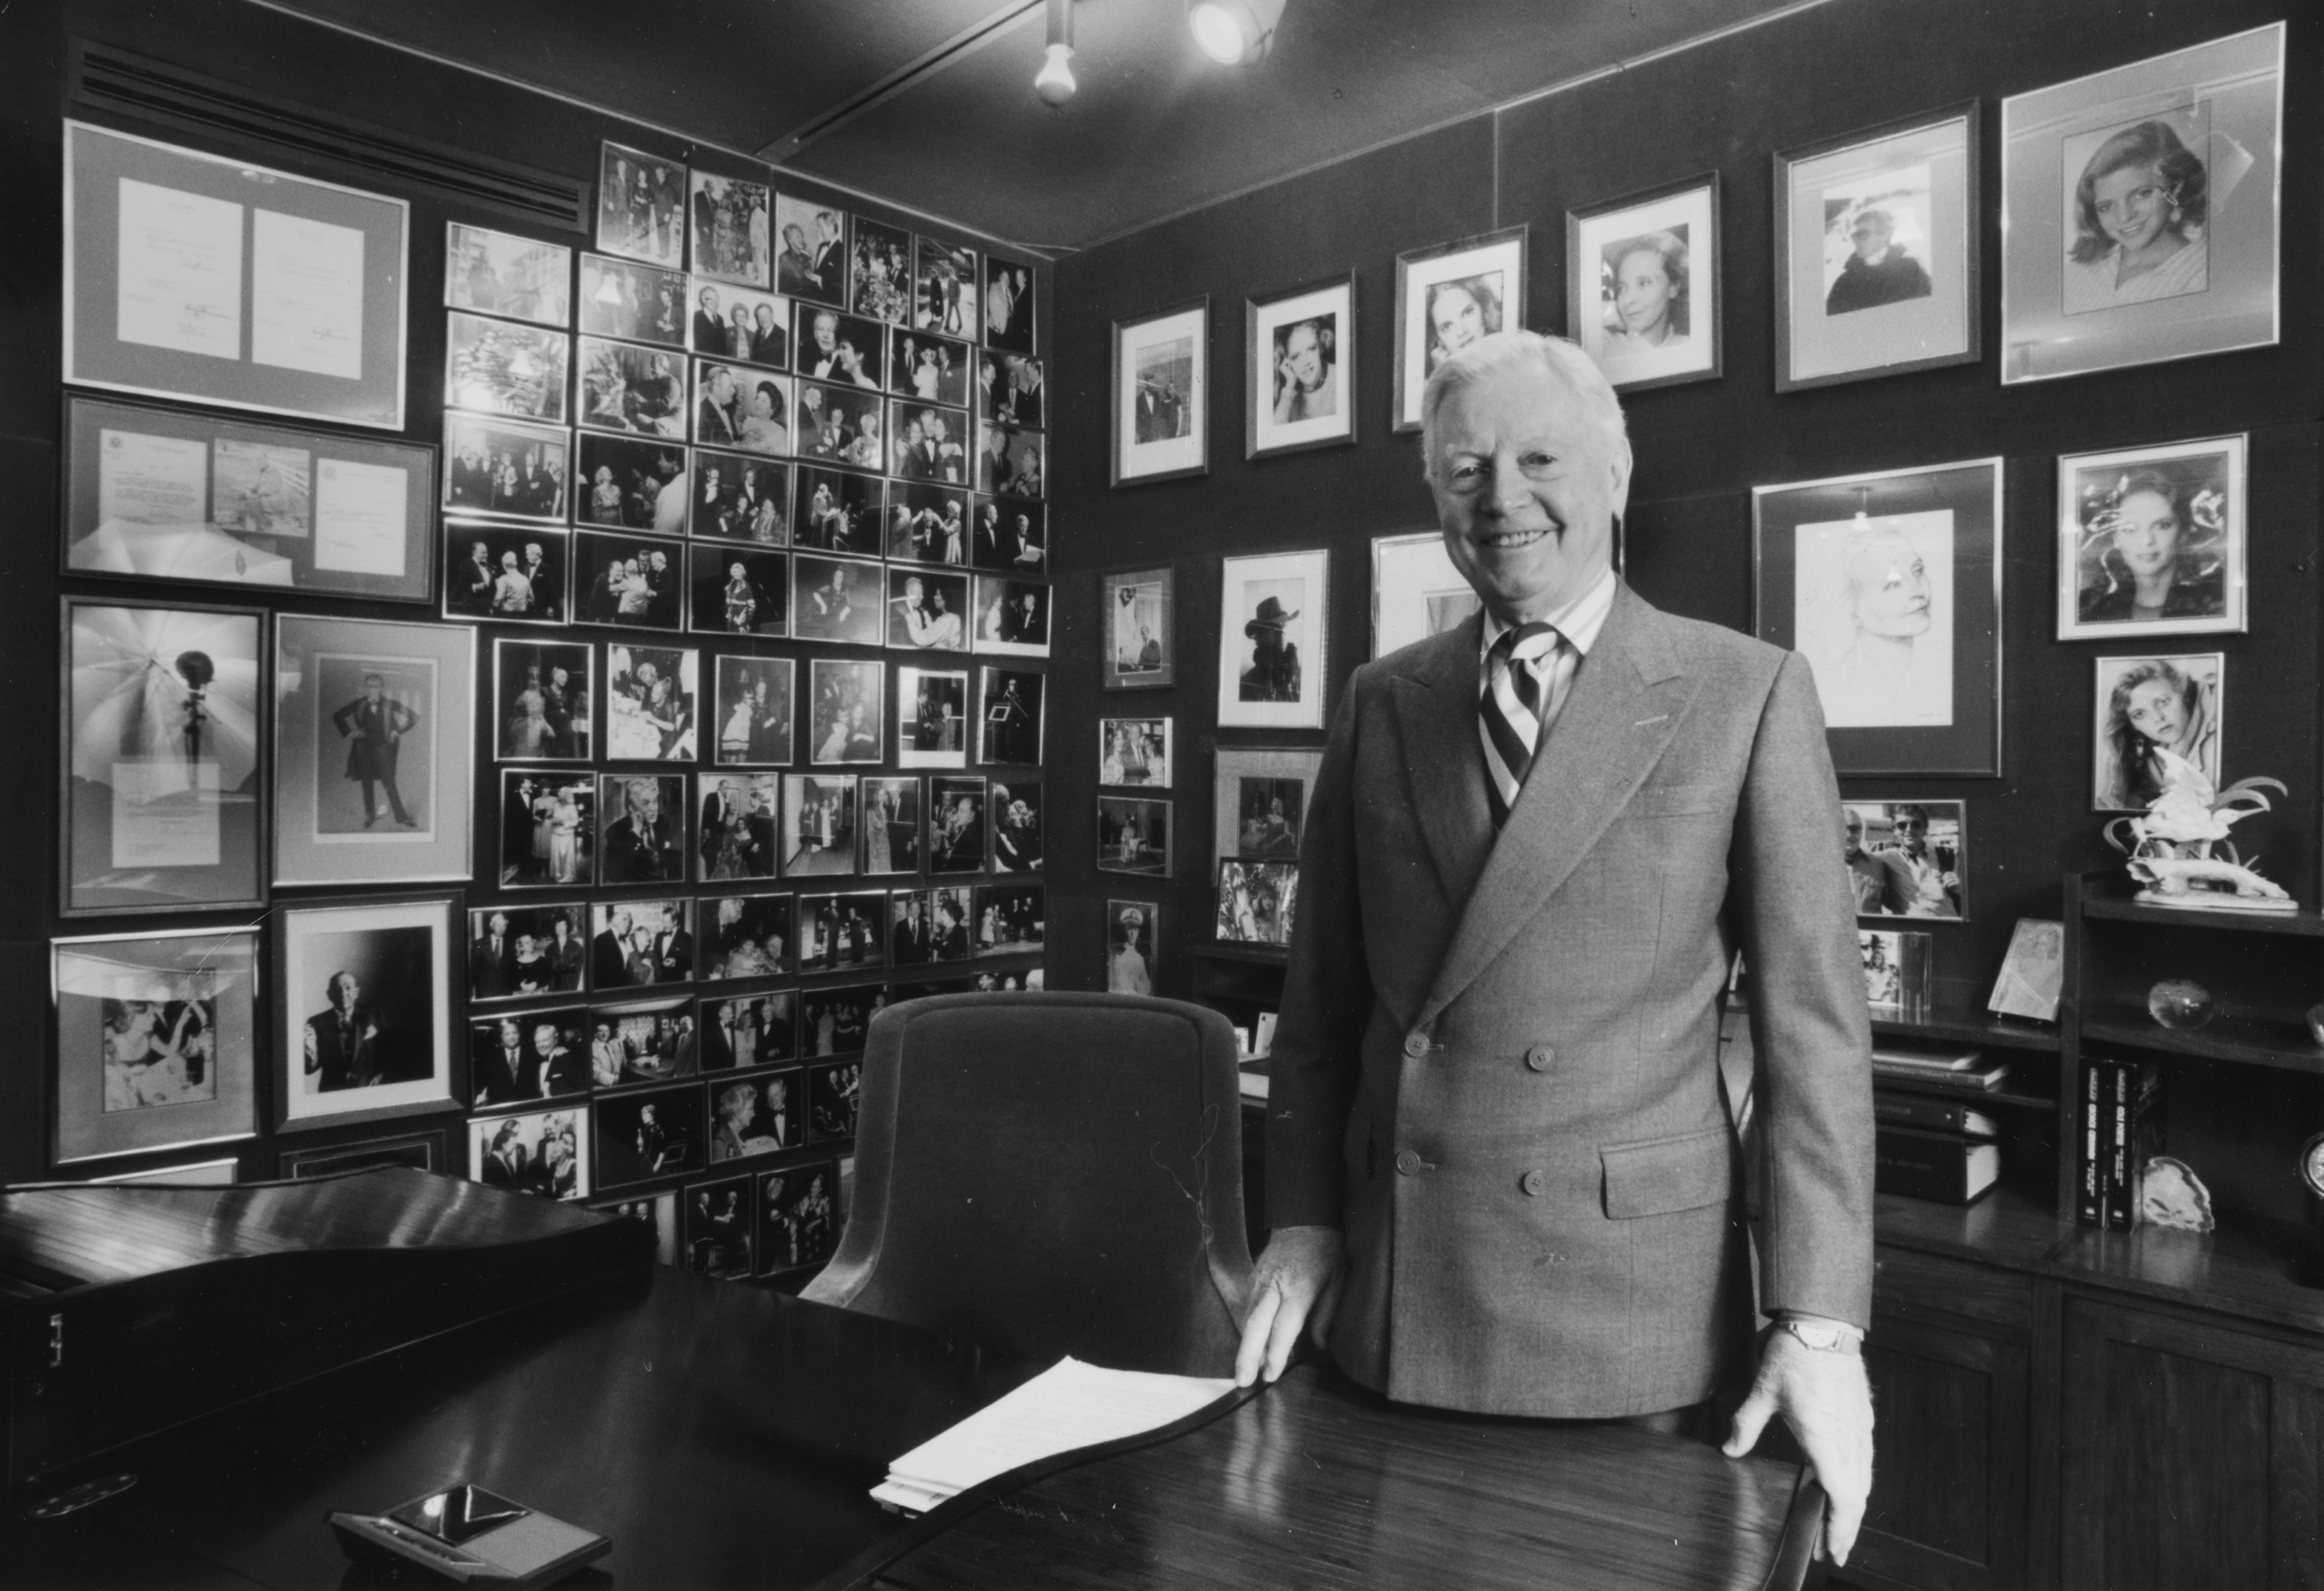 <p>Donald Seawell in his office at the Denver Center for the Performing Arts in 1991.</p>